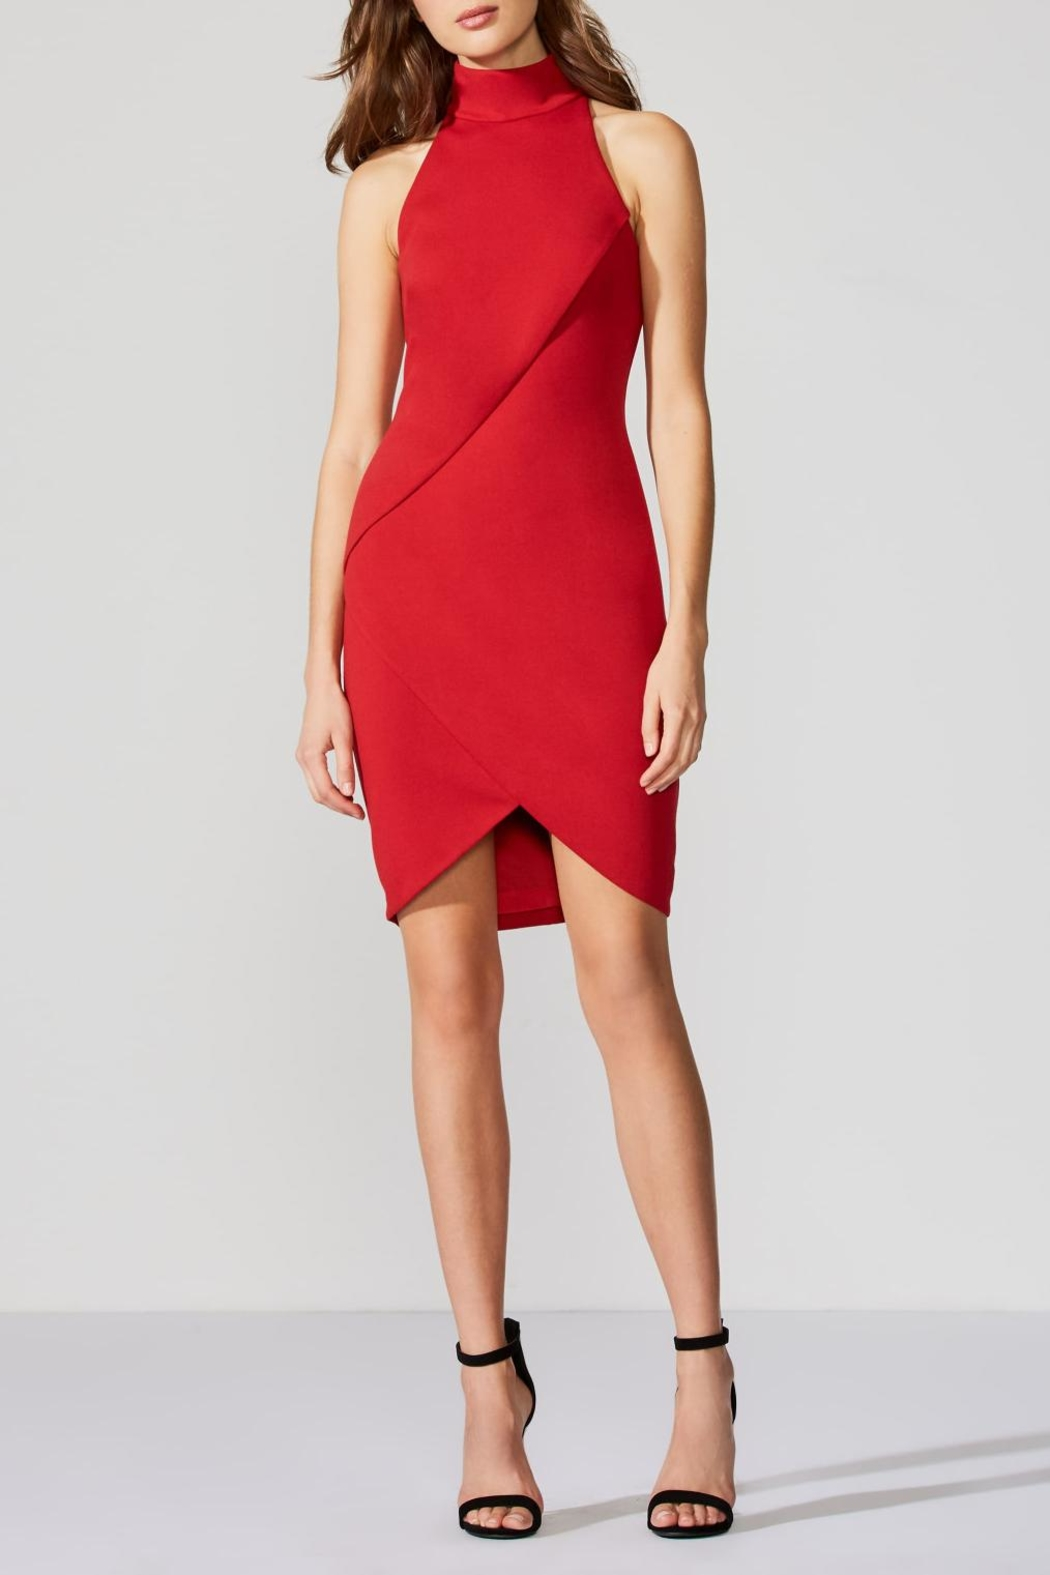 Bailey 44 Ponte Red Dress - Main Image